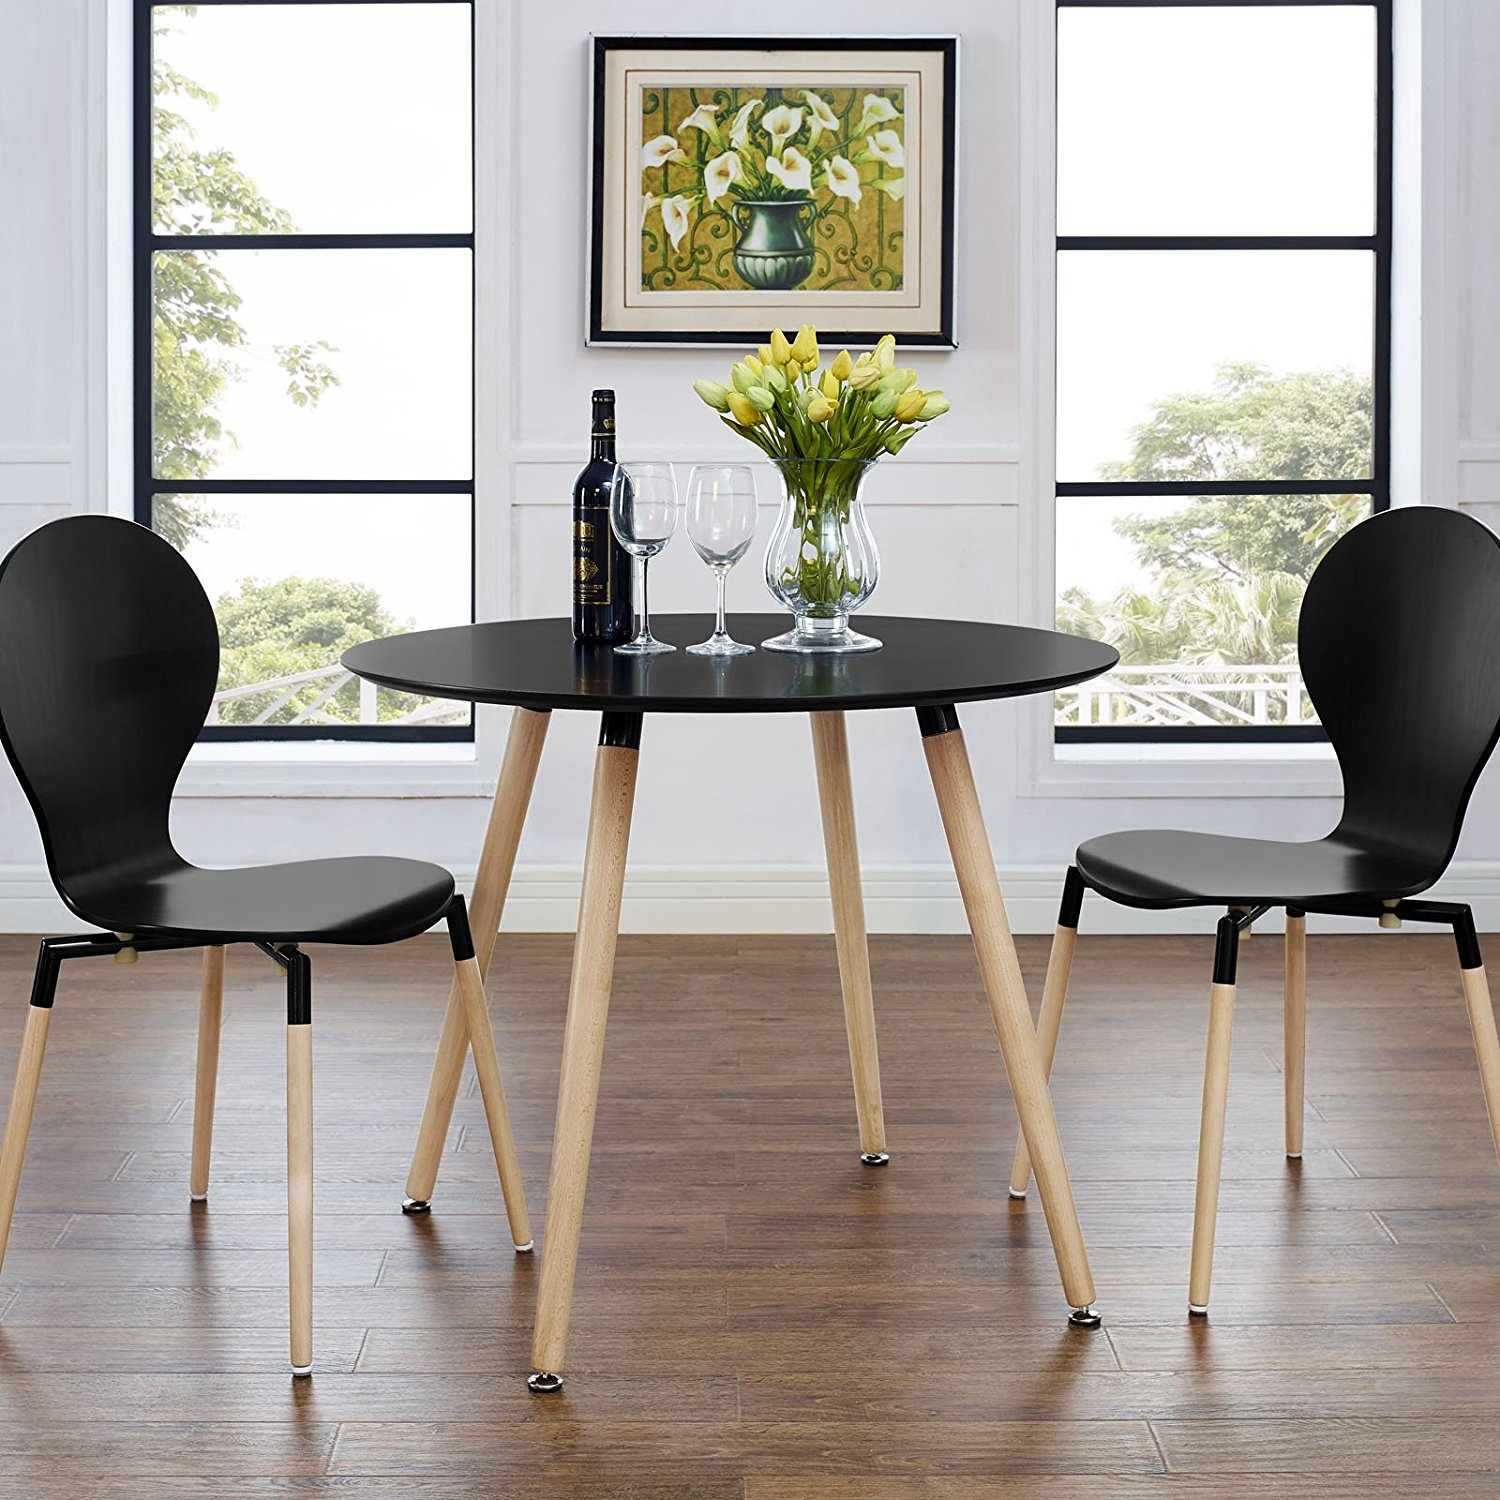 Charming Twenty Dining Tables That Work Great In Small Spaces   Living In A Shoebox